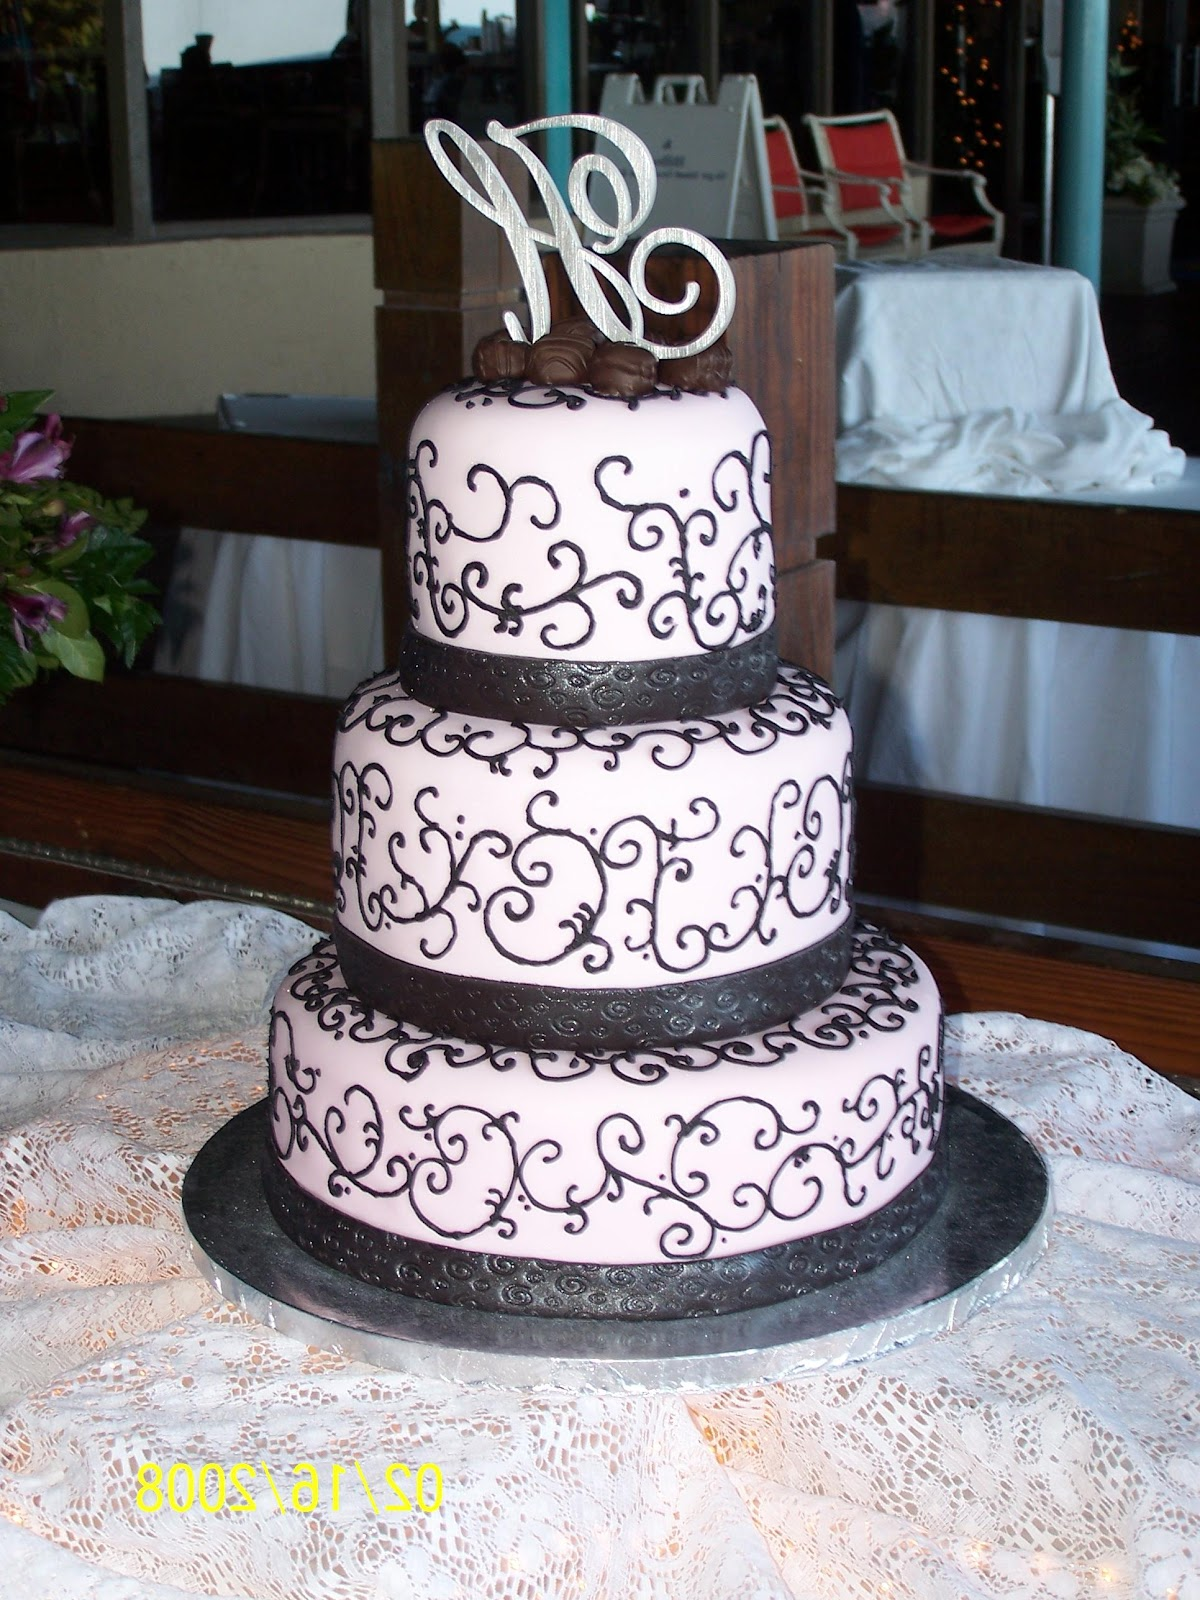 Duck Tolling Retriever Cake Ideas and Designs